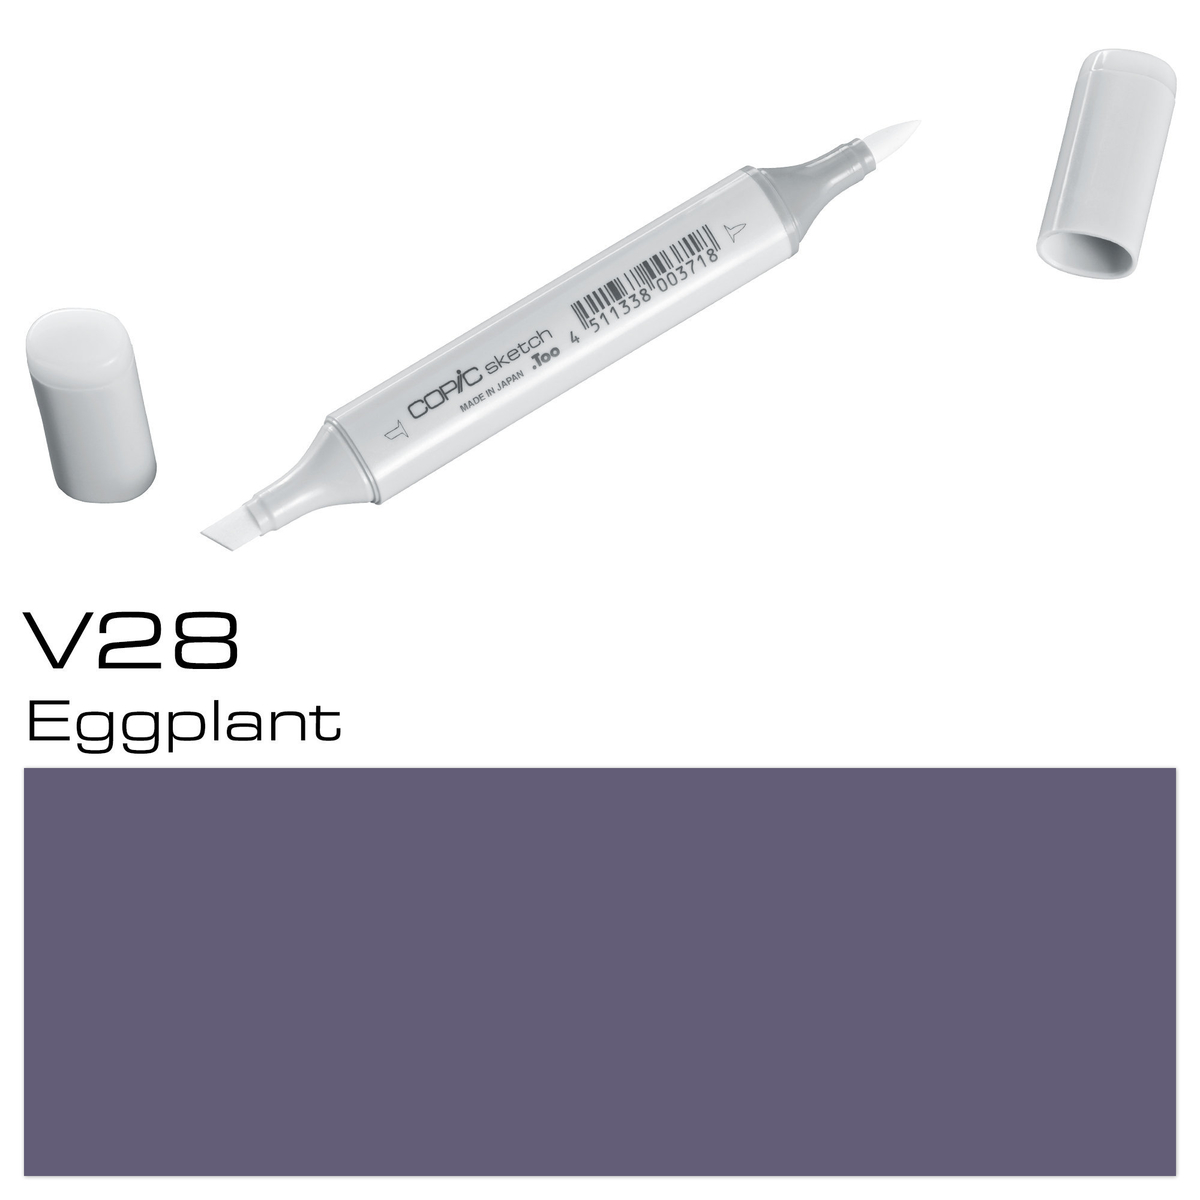 Copic Sketch V 28 eggplant